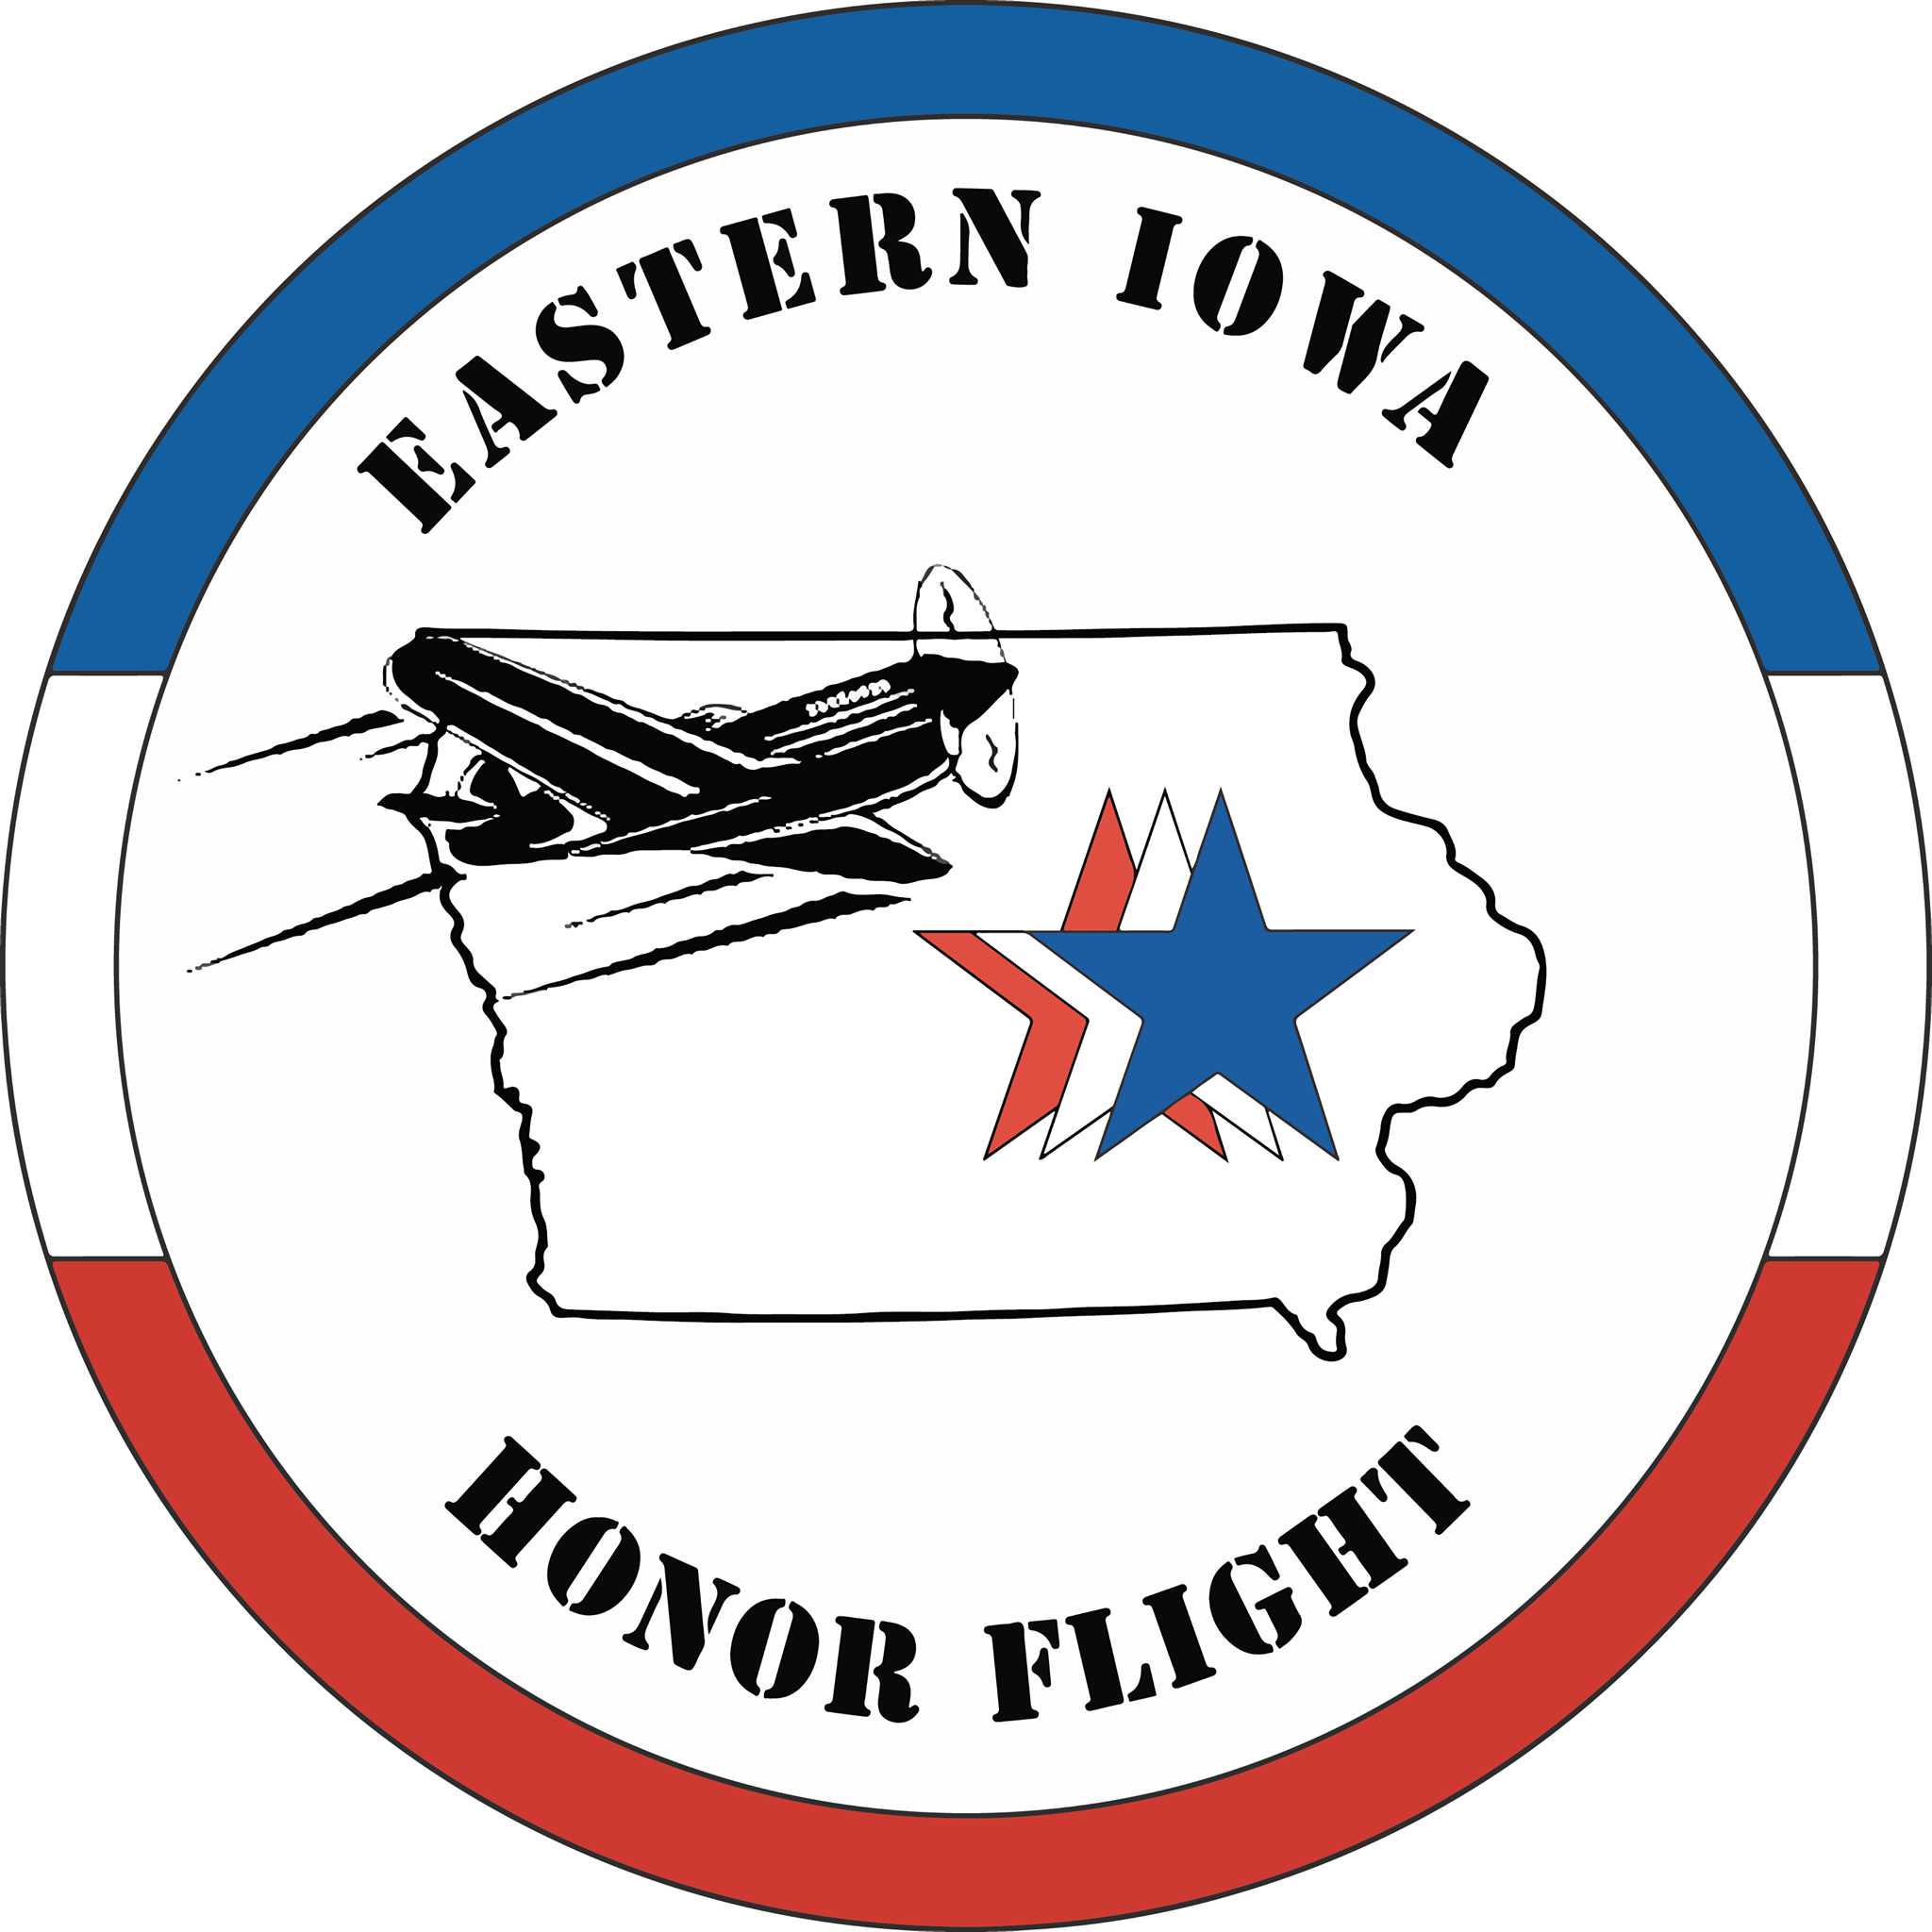 Eastern Iowa Honor Flight